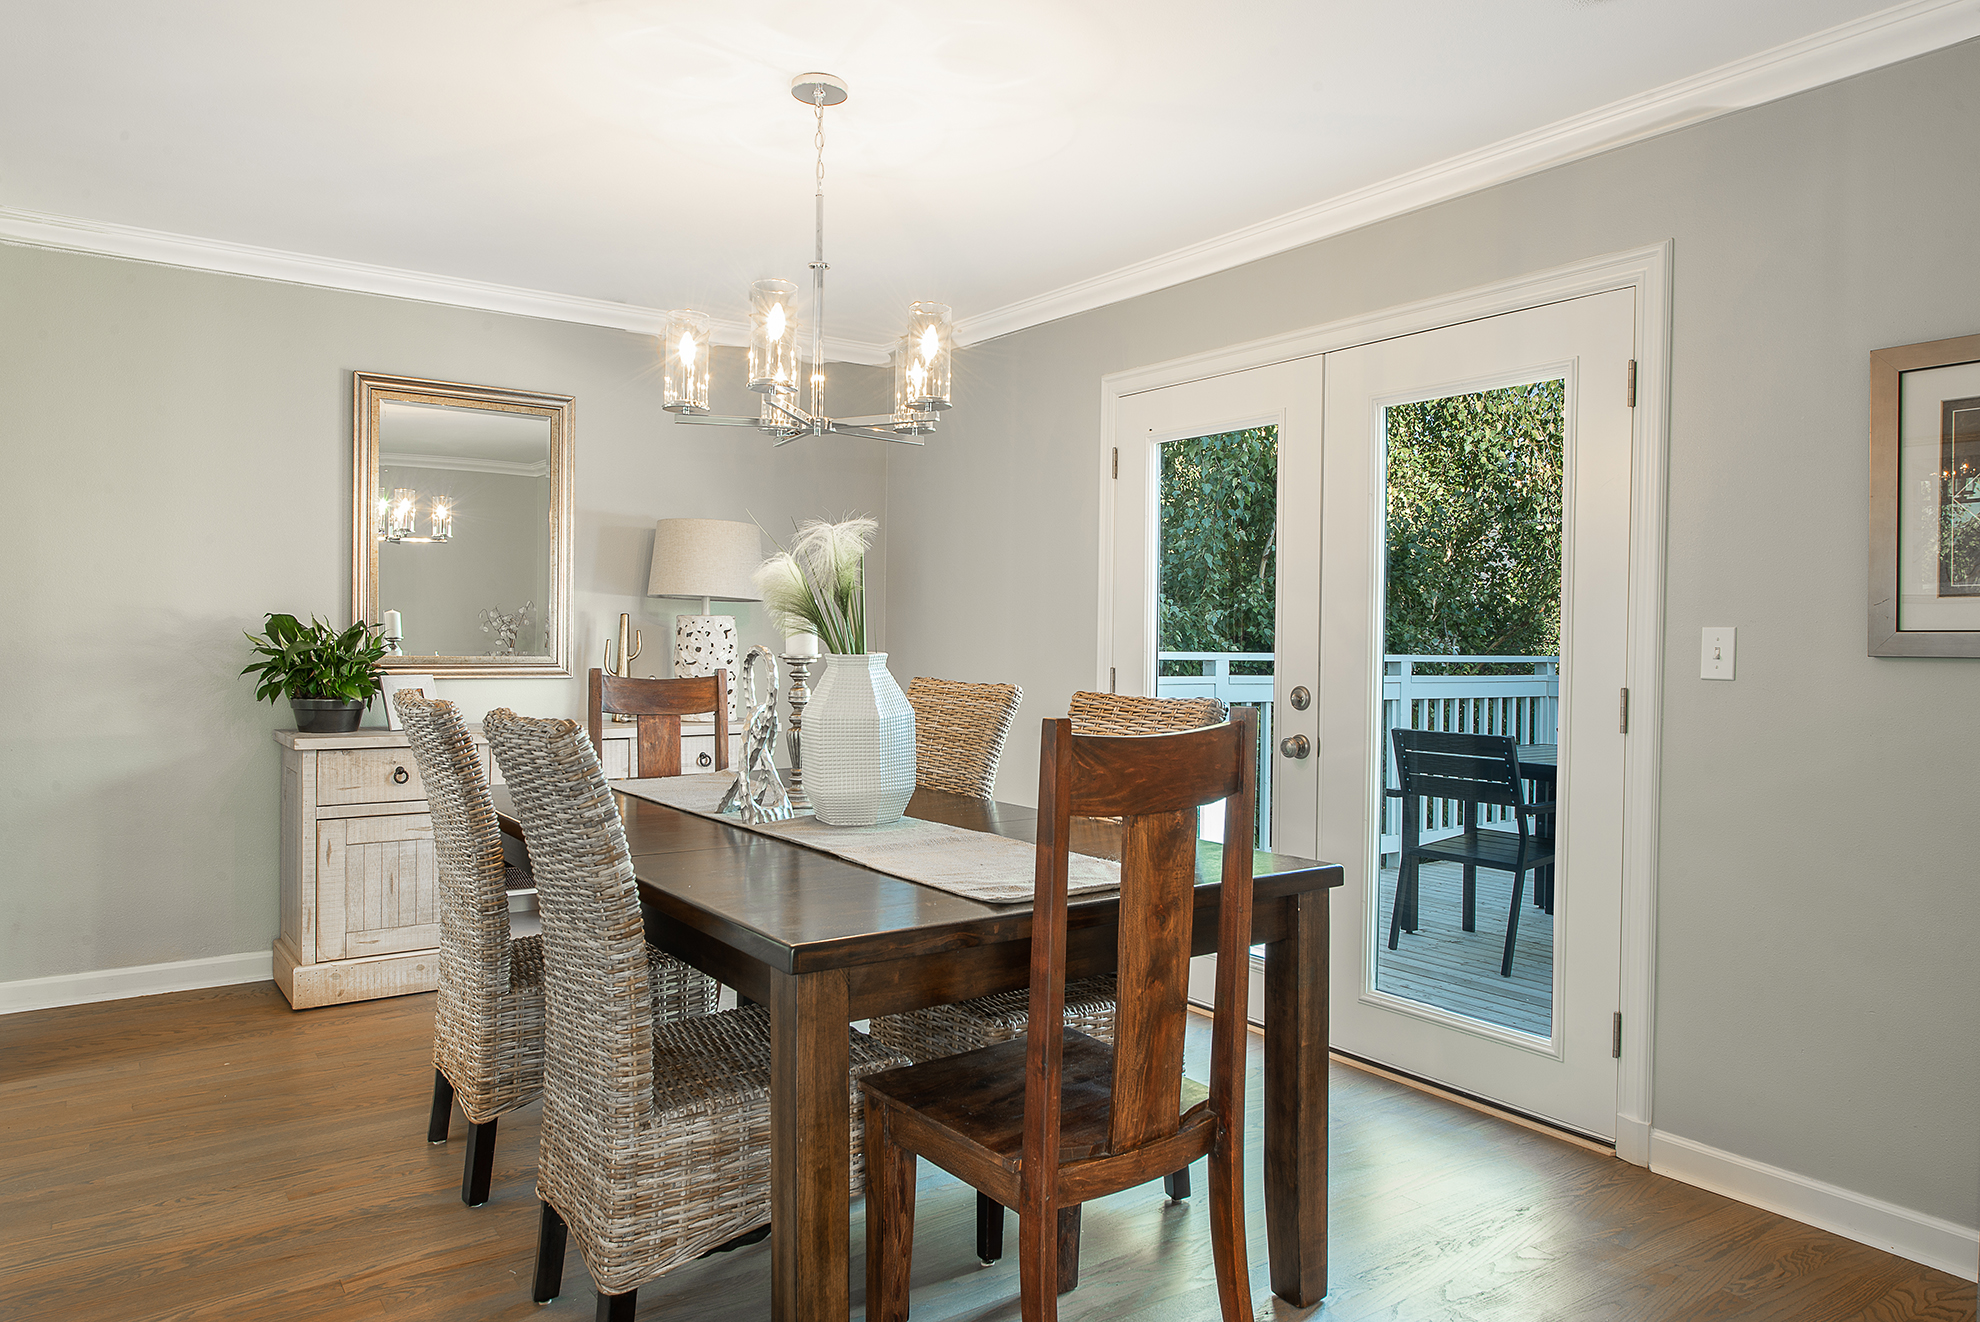 These doors are great for outdoor dining access.